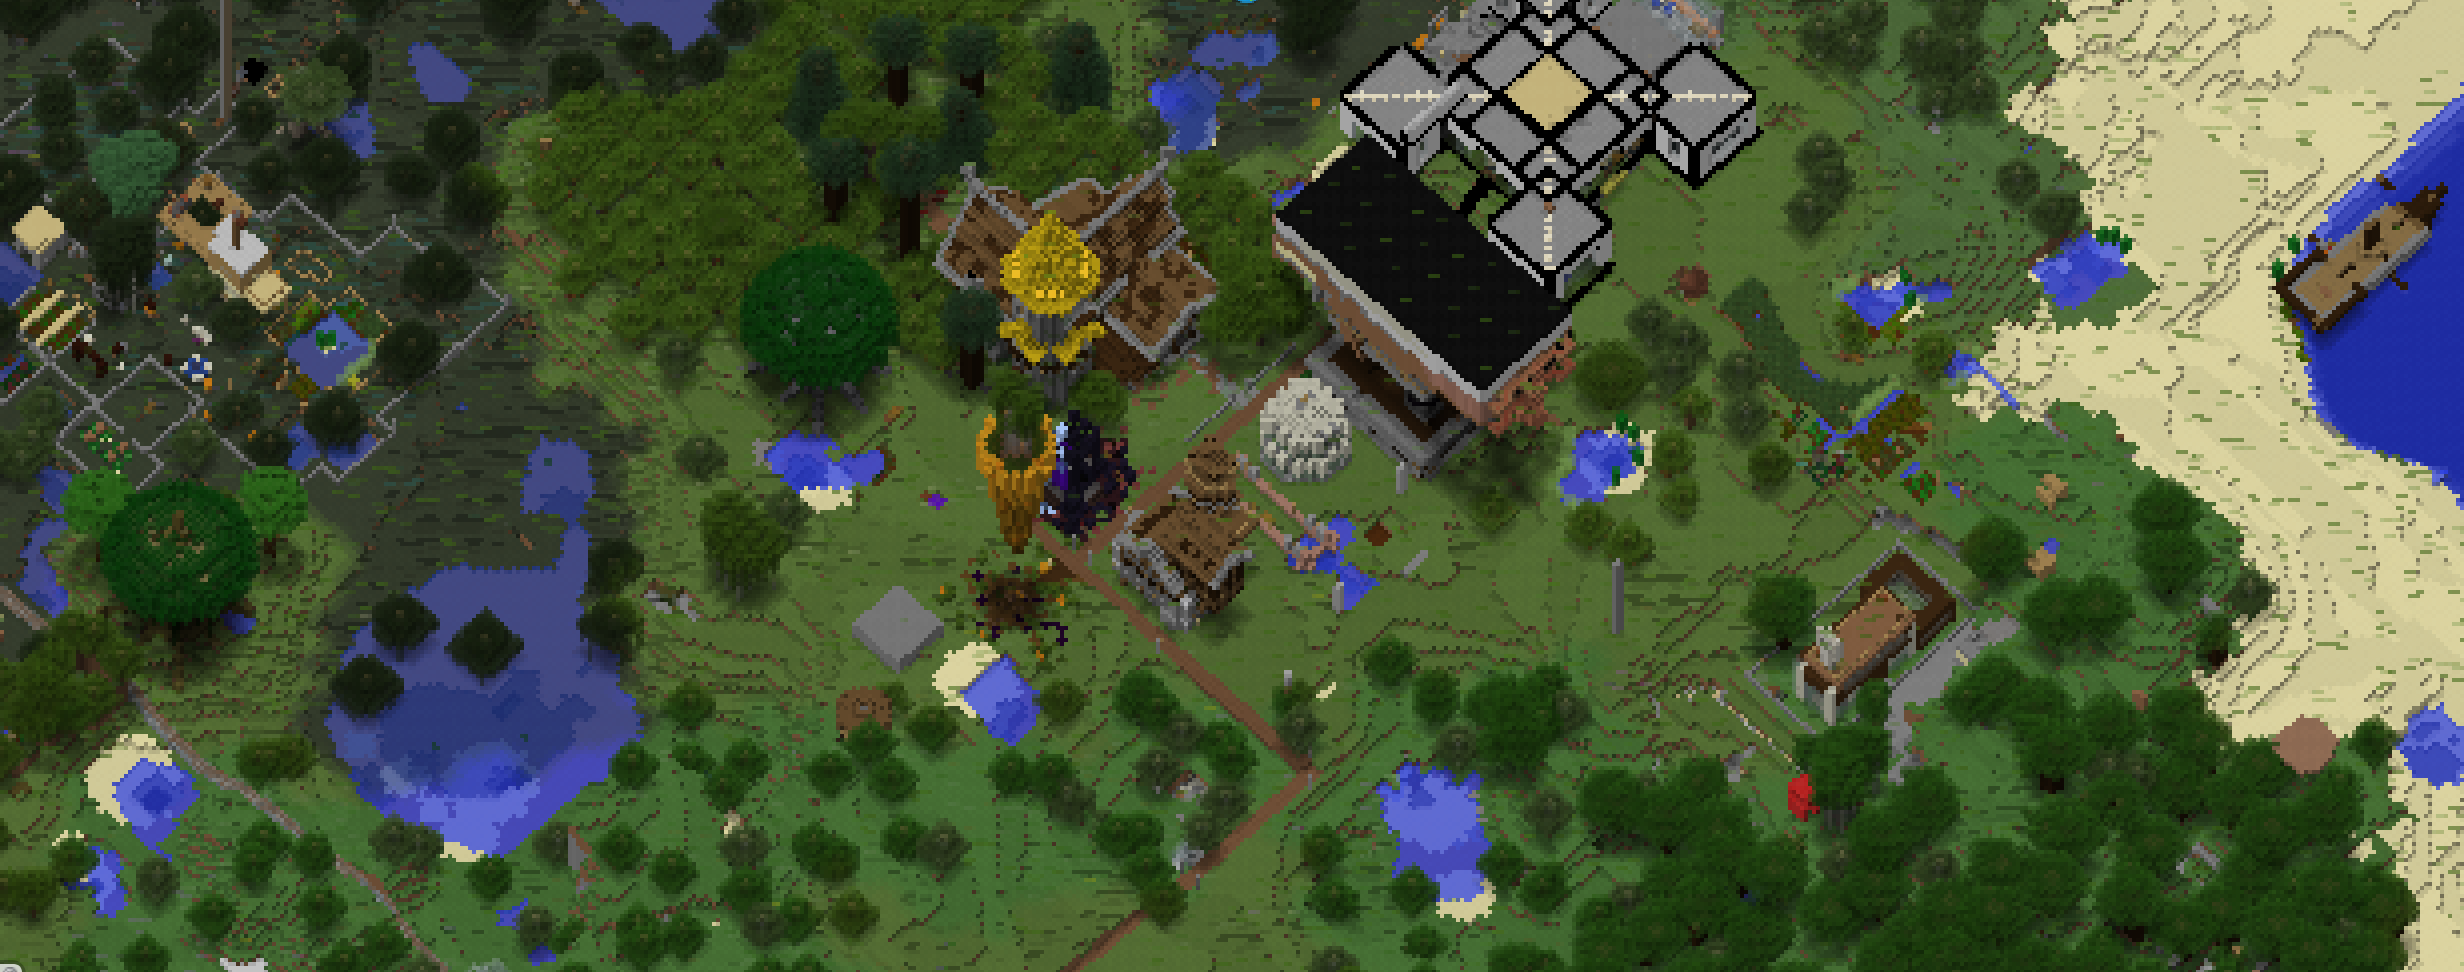 A screenshot of the original spawn point (note the gigantic, floating carrot), from the Germinal Minecraft server map.